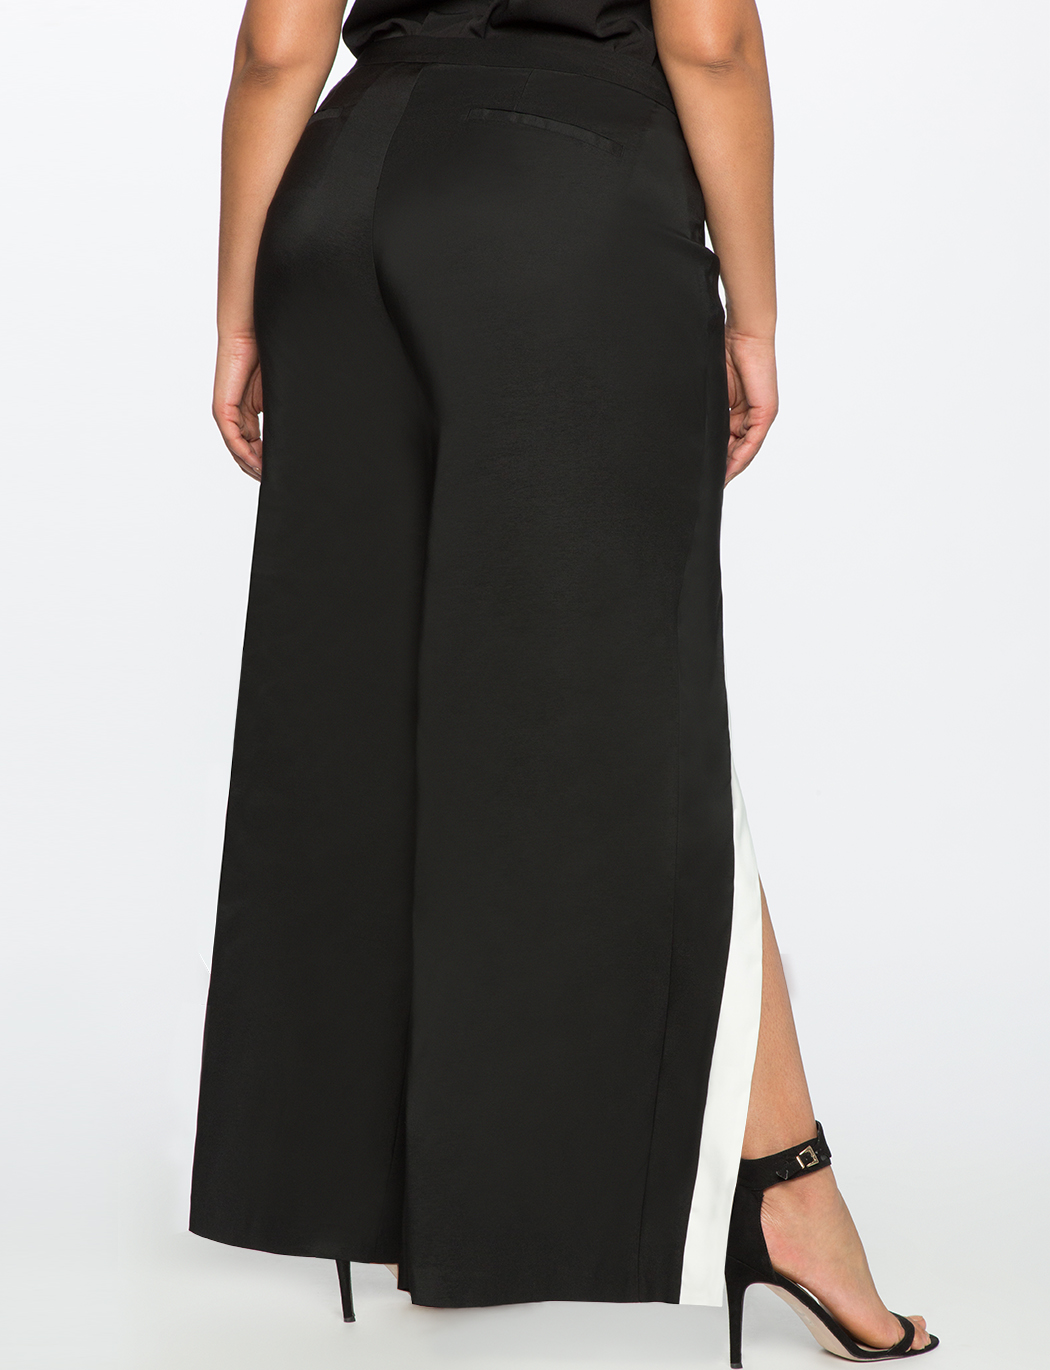 Cross Front Pant With Side Slit Women S Plus Size Pants